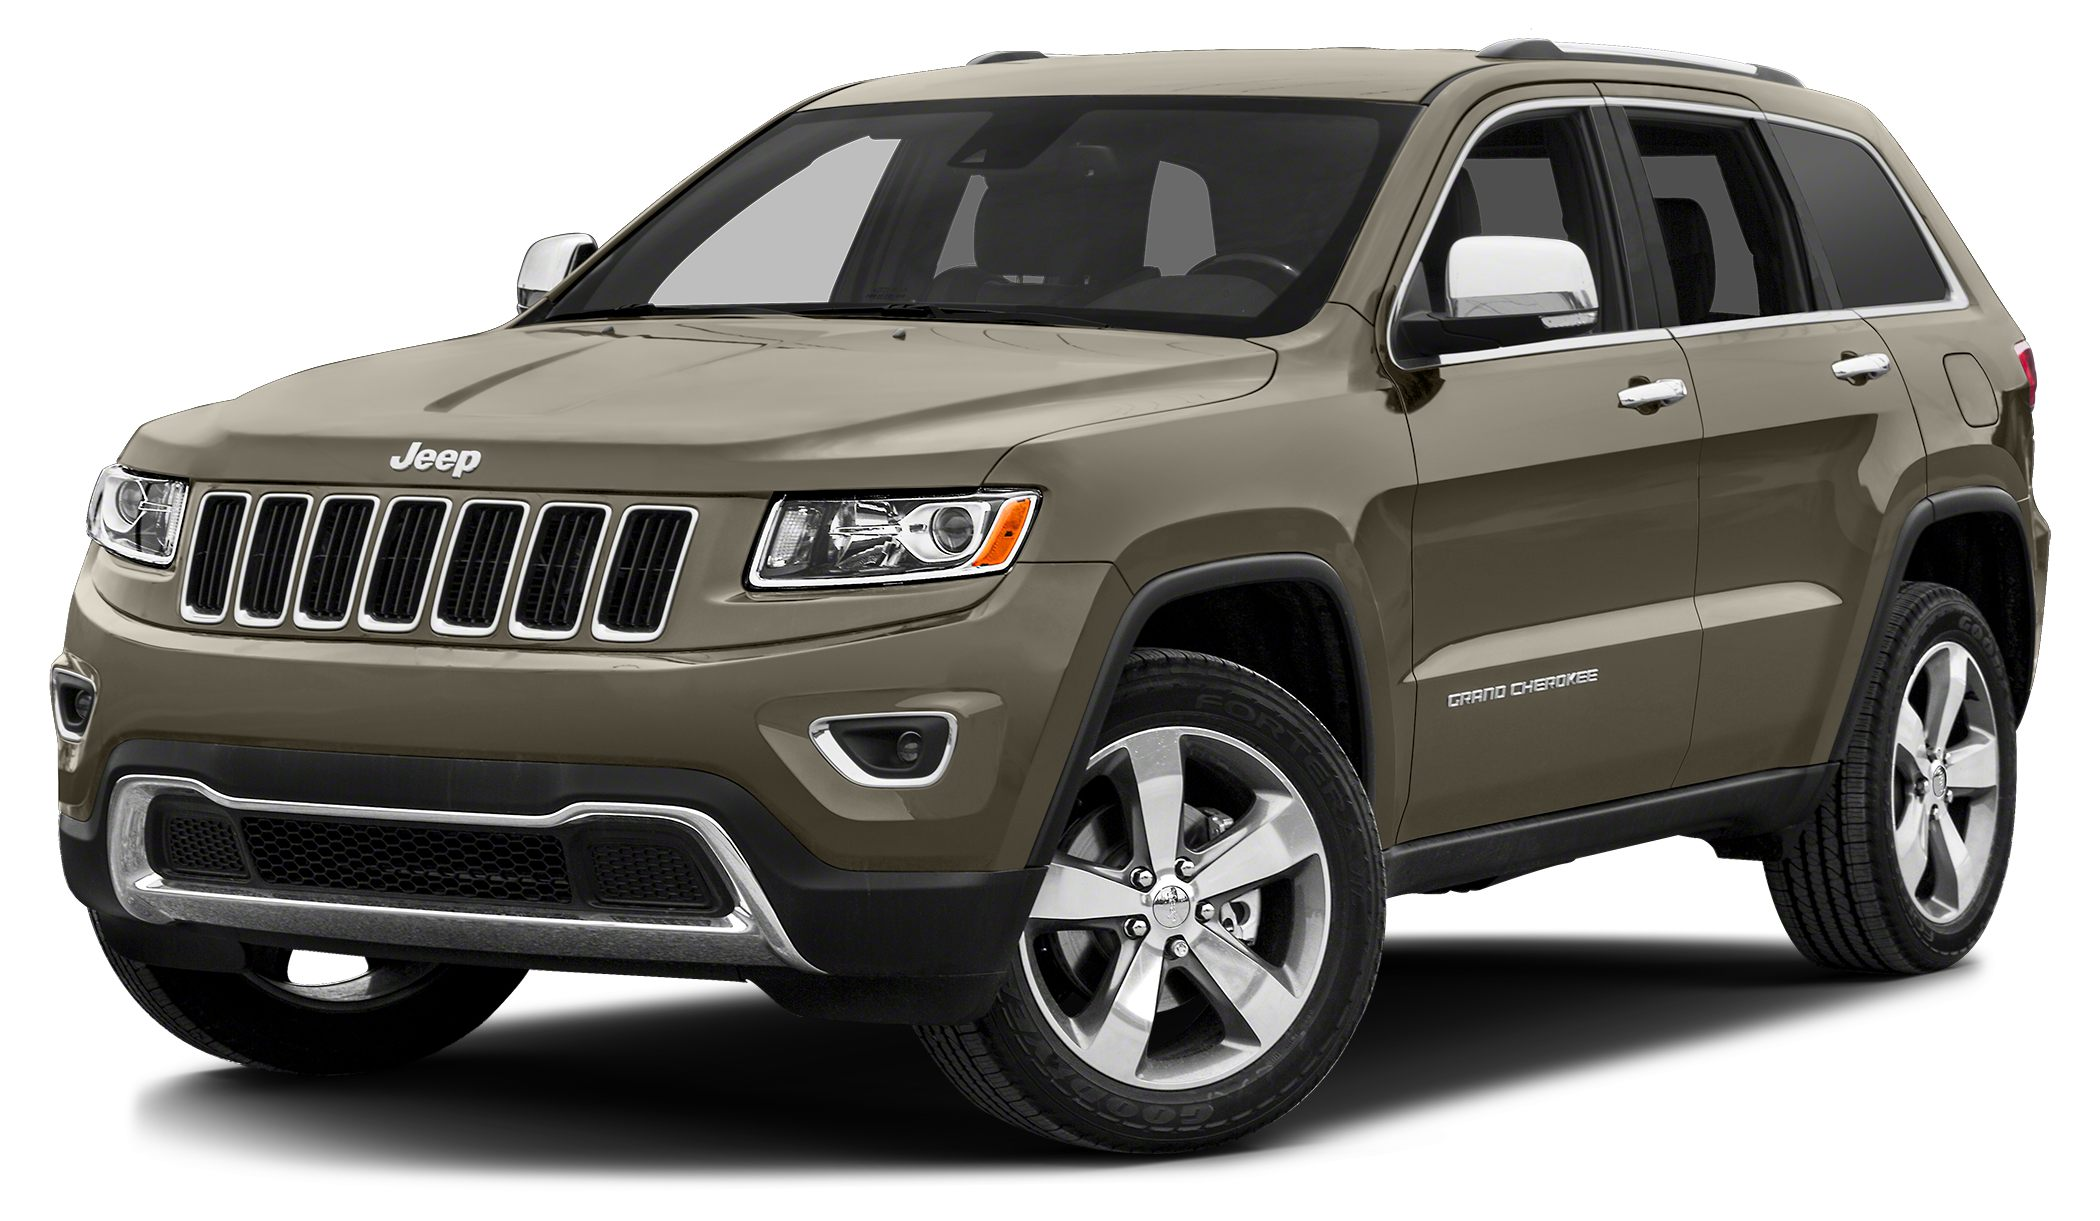 2016 Jeep Grand Cherokee Limited It just doesnt get any better This 2016 Jeep Grand Cherokee Li